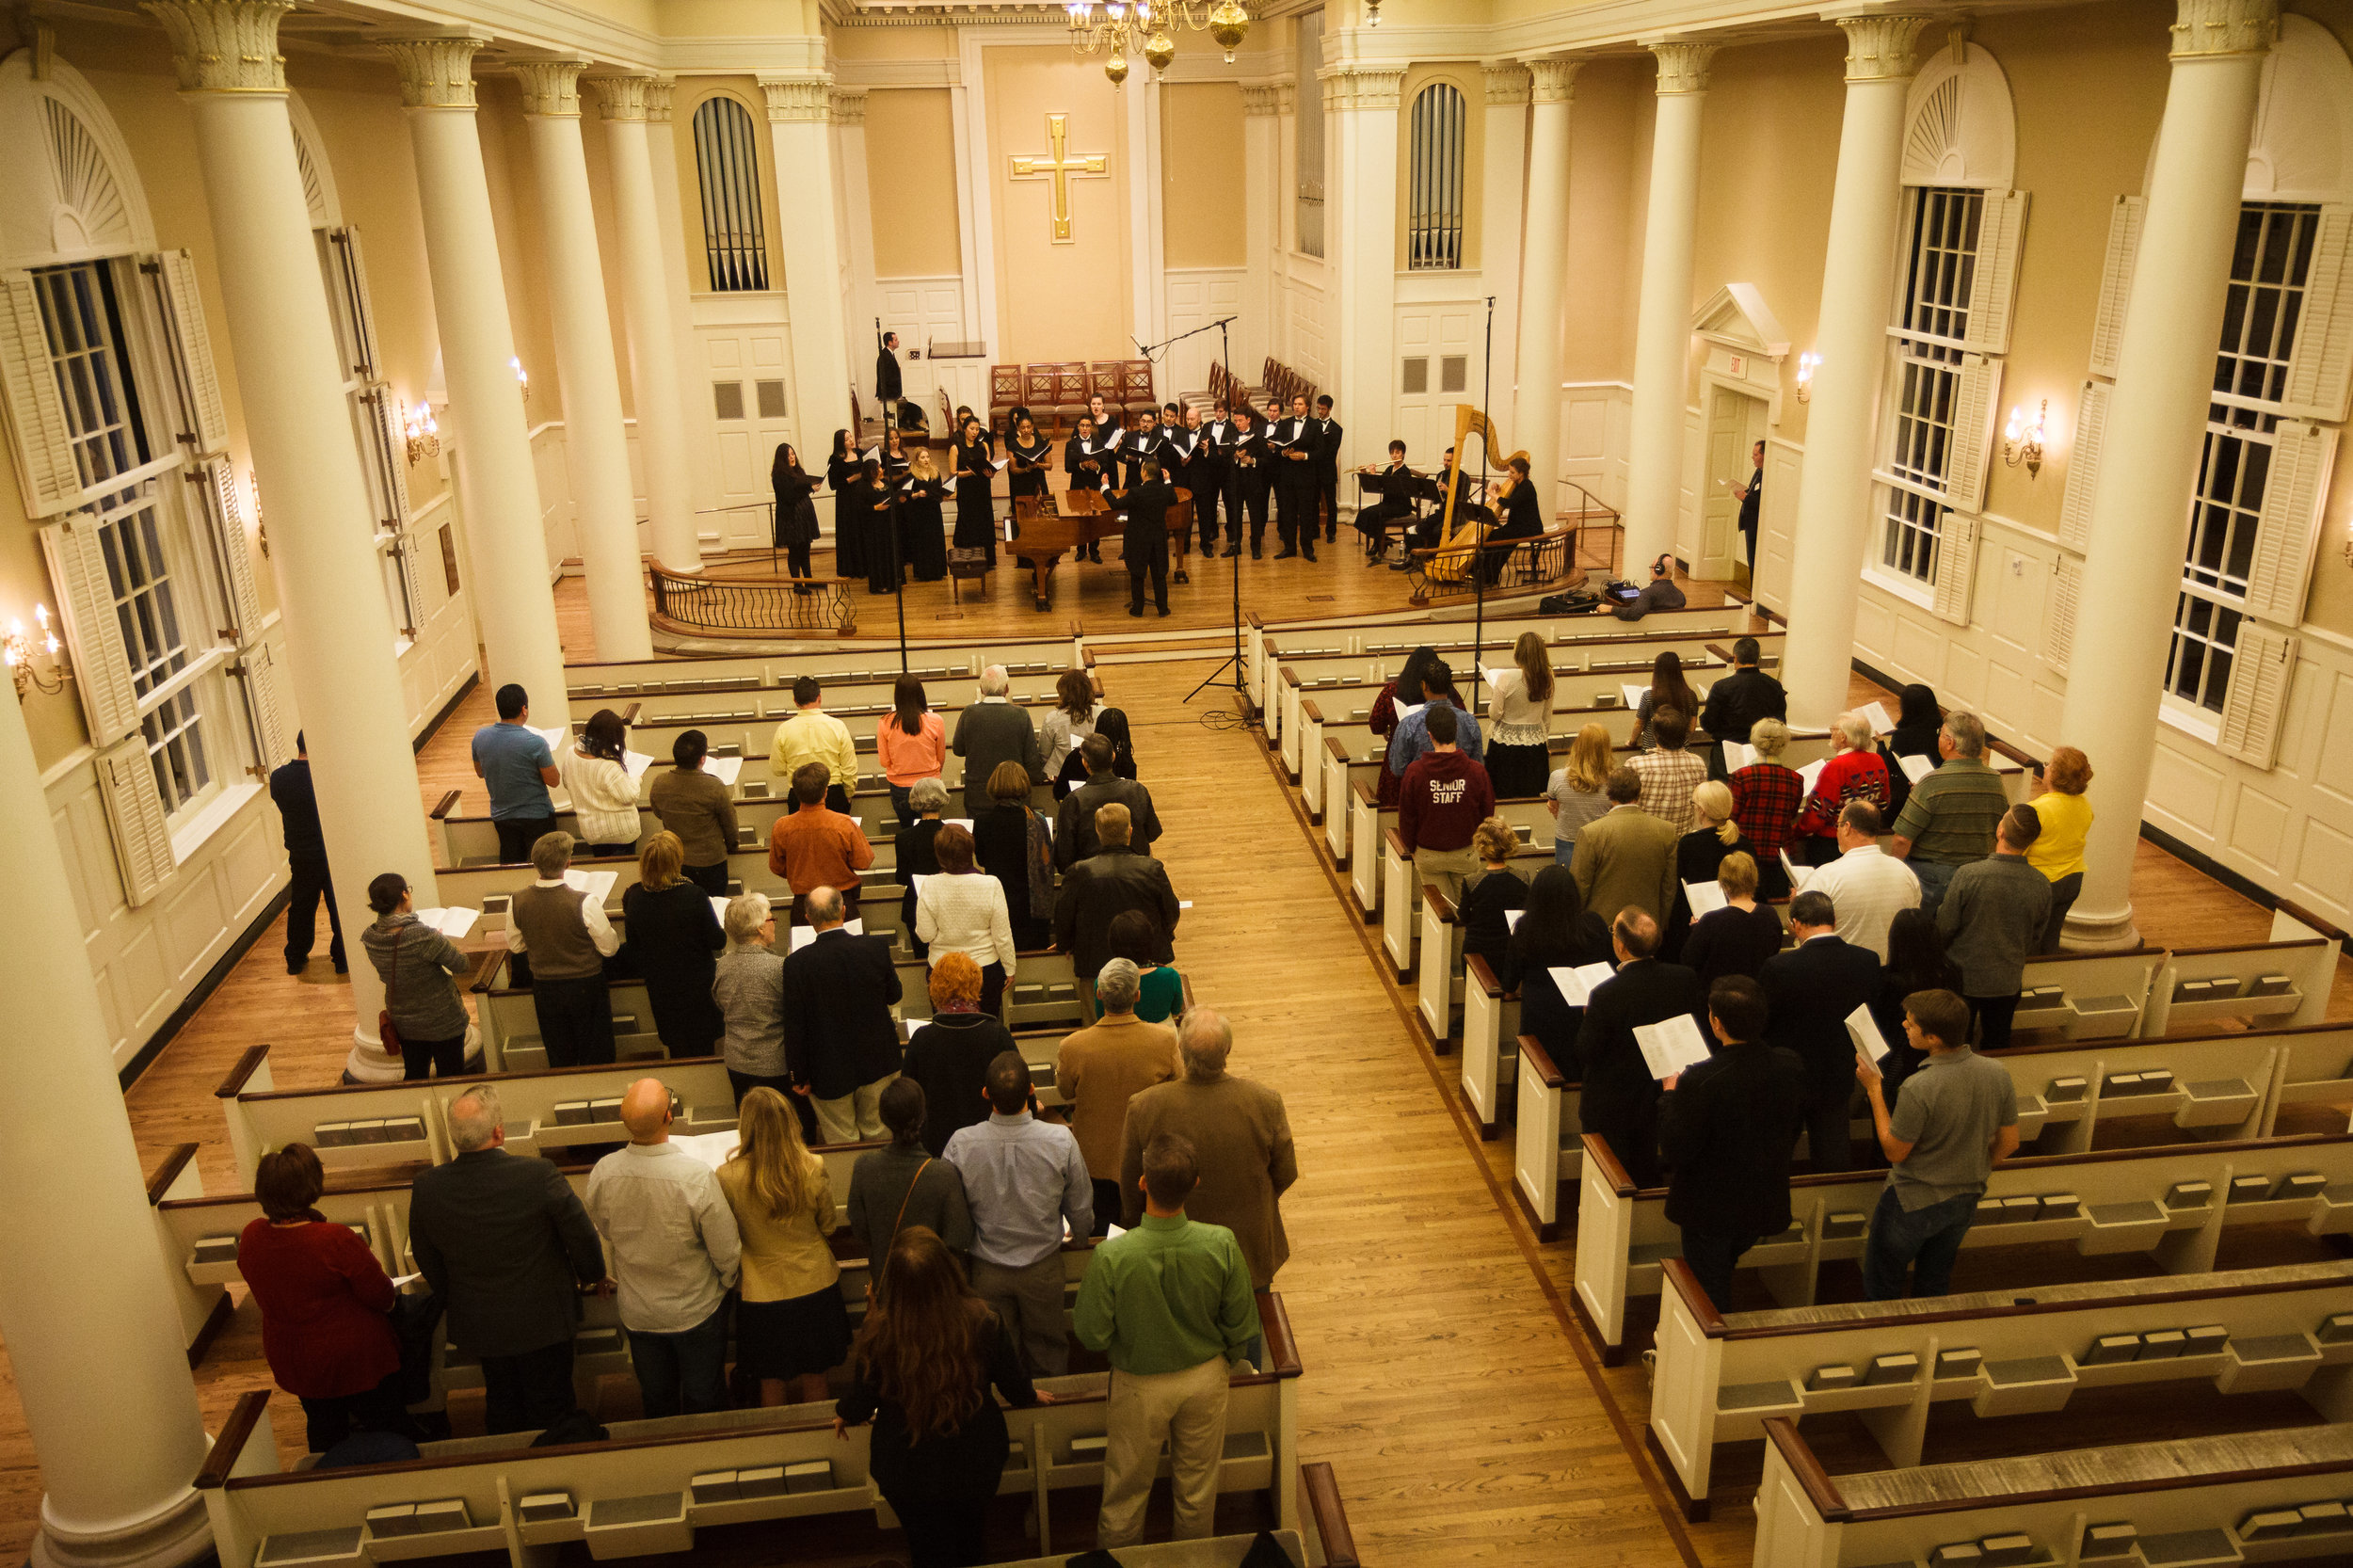 DallasChamberChoirPerkinsChapelConcert2015-132.jpg